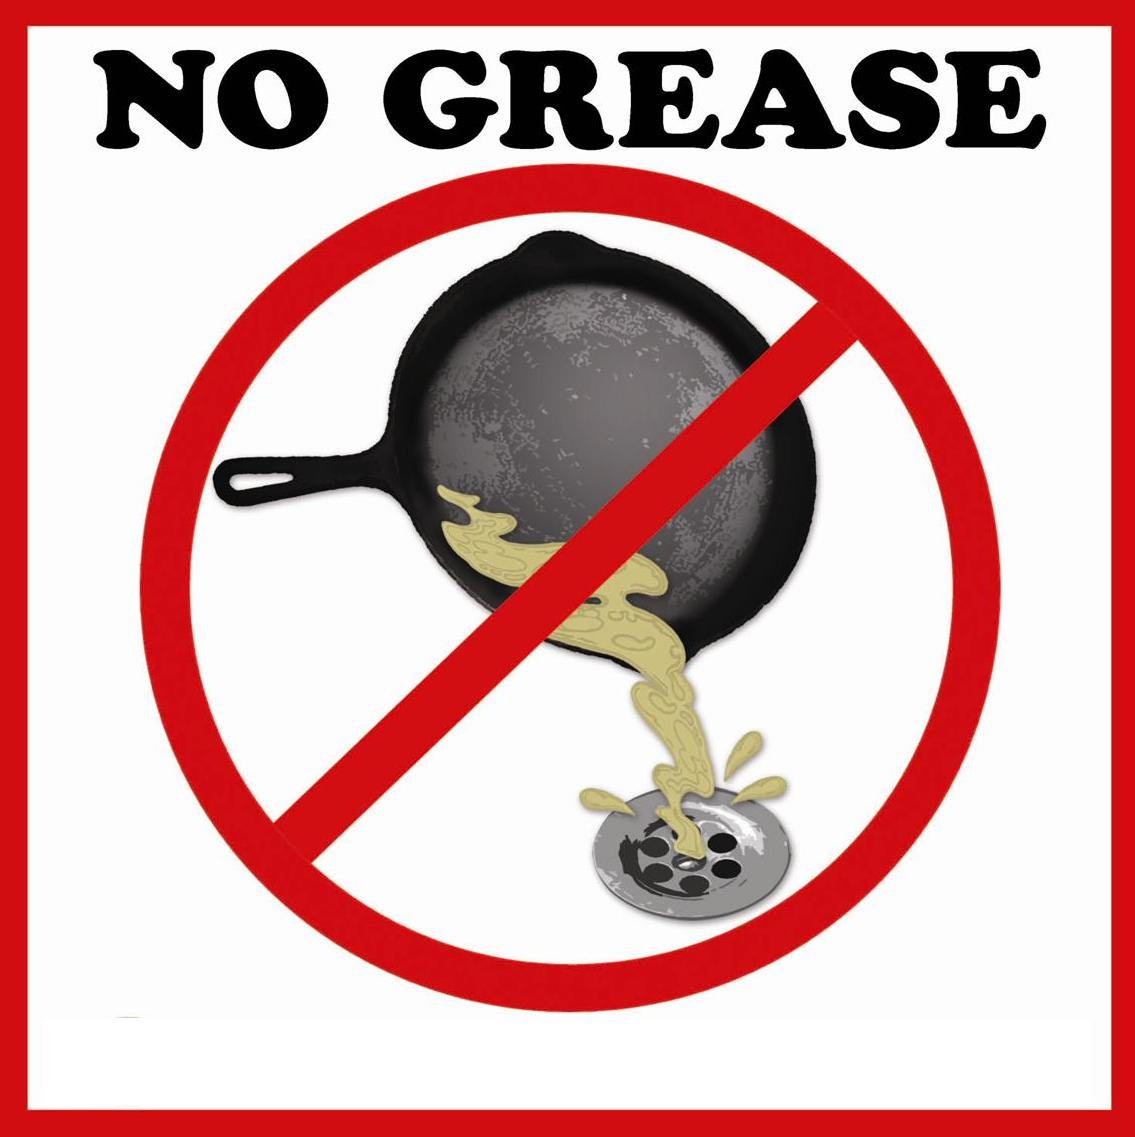 No Grease